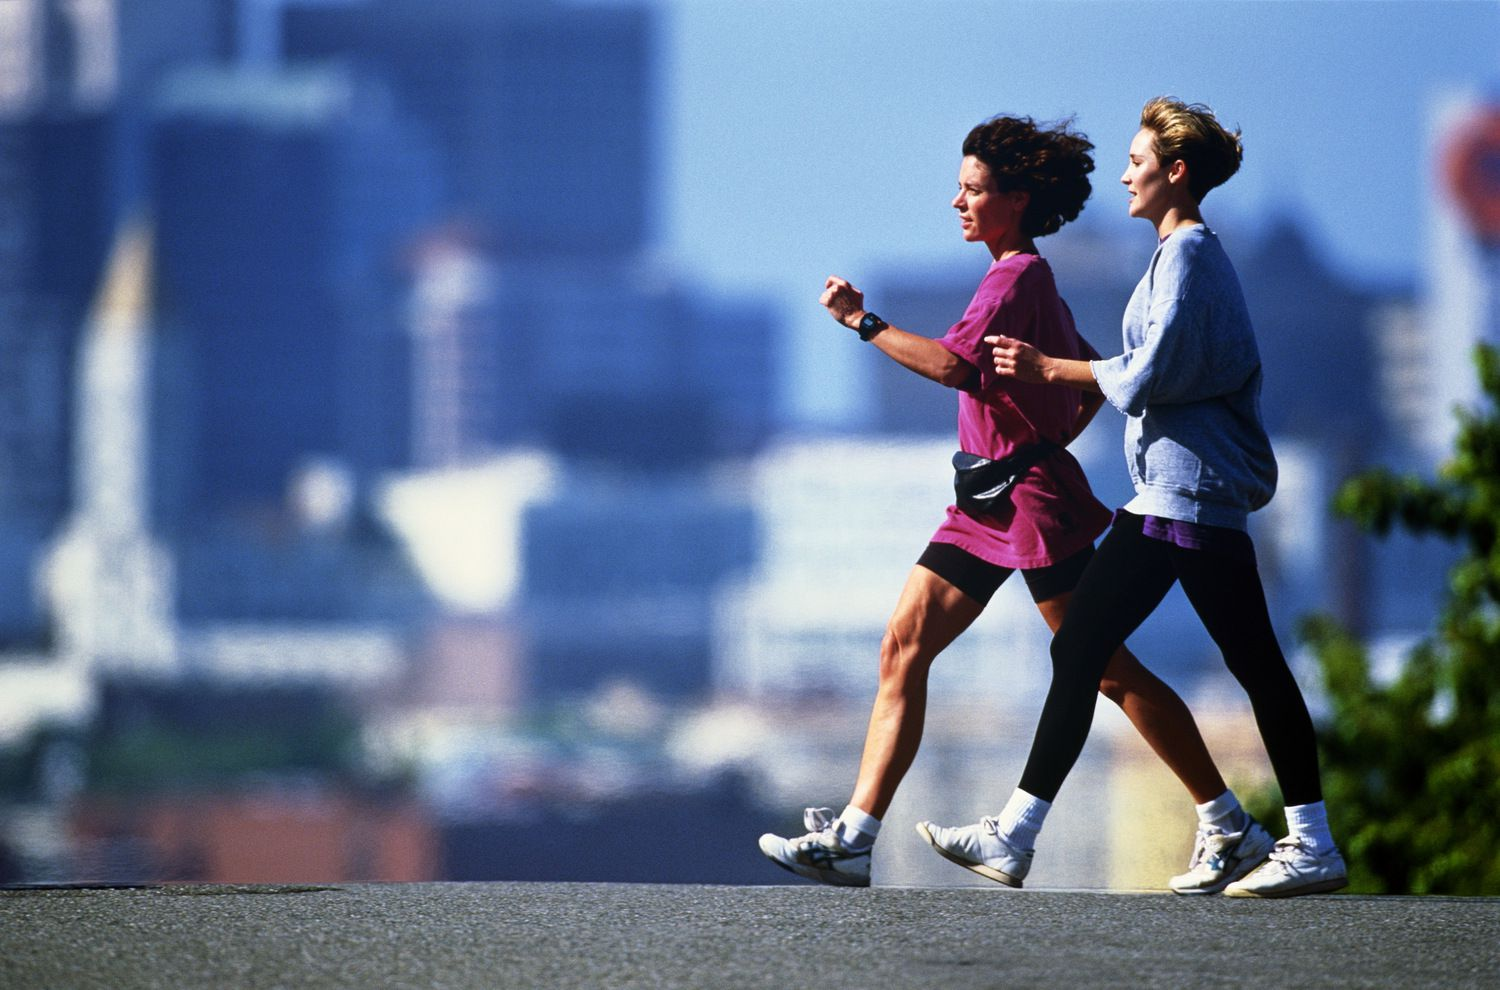 Walking and Running Pace and Speed Calculator